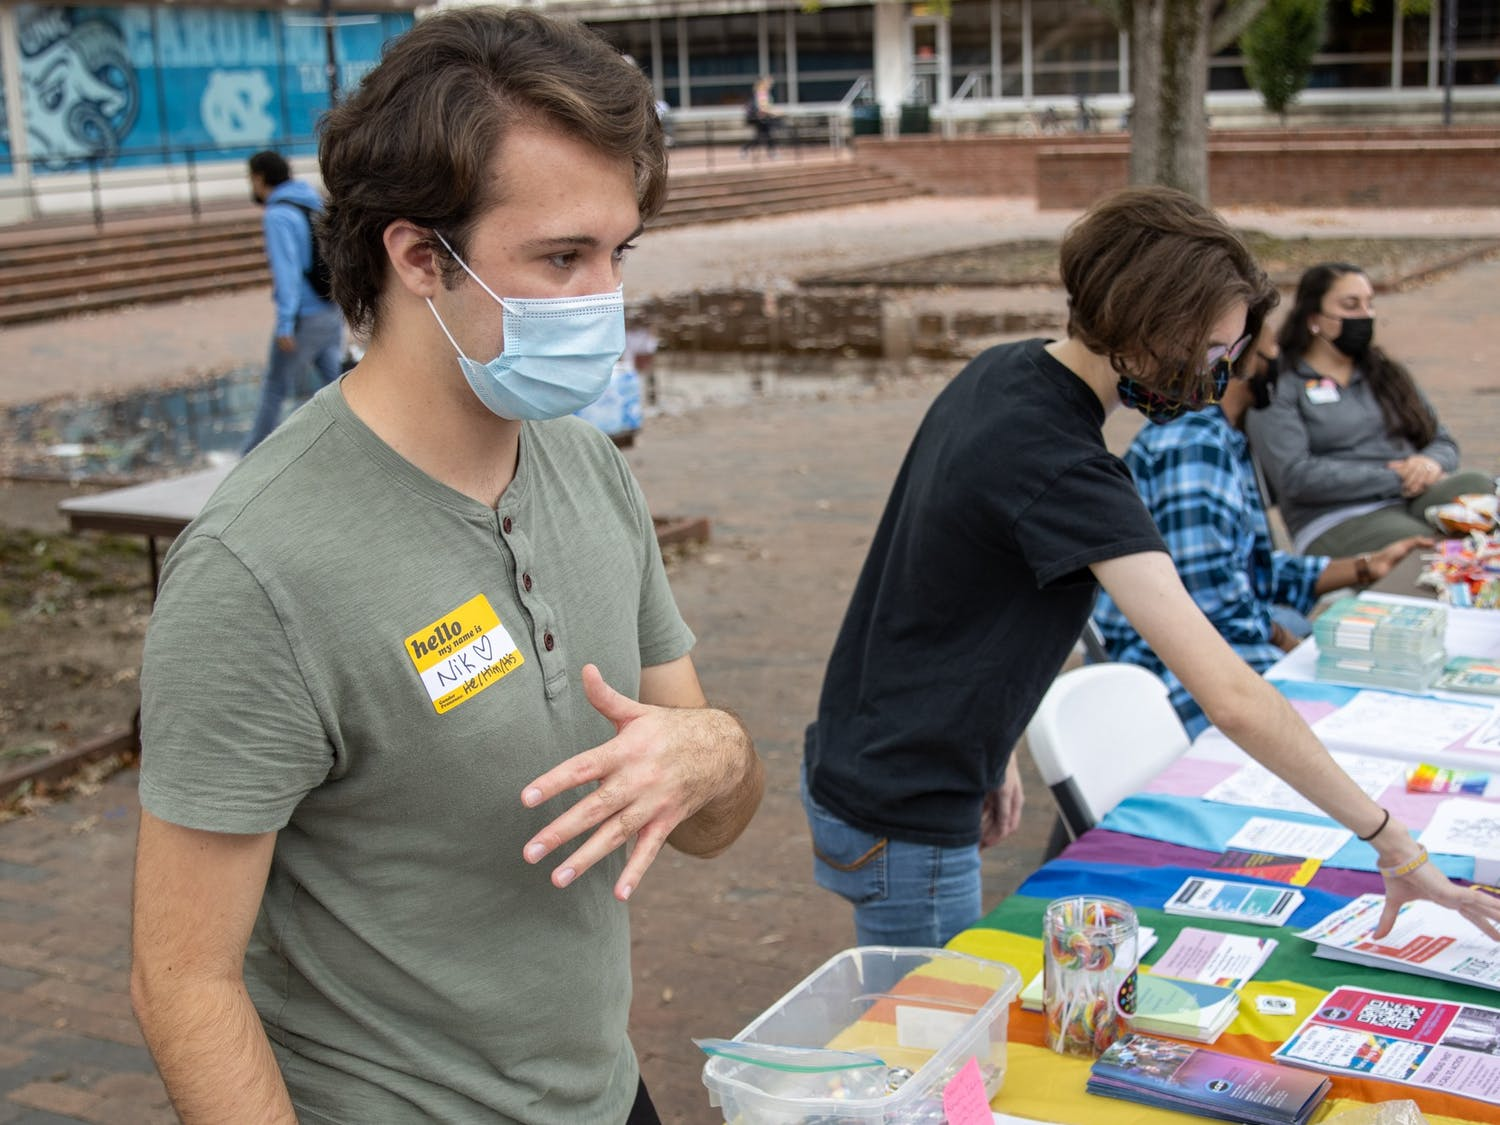 Junior environmental studies major Nikalus Ward and senior biology major Rowan Merritt talk to patrons that visited the coming-out-day table in the Pit on Oct. 11. The event was sponsored by UNC's LGBTQ Center.